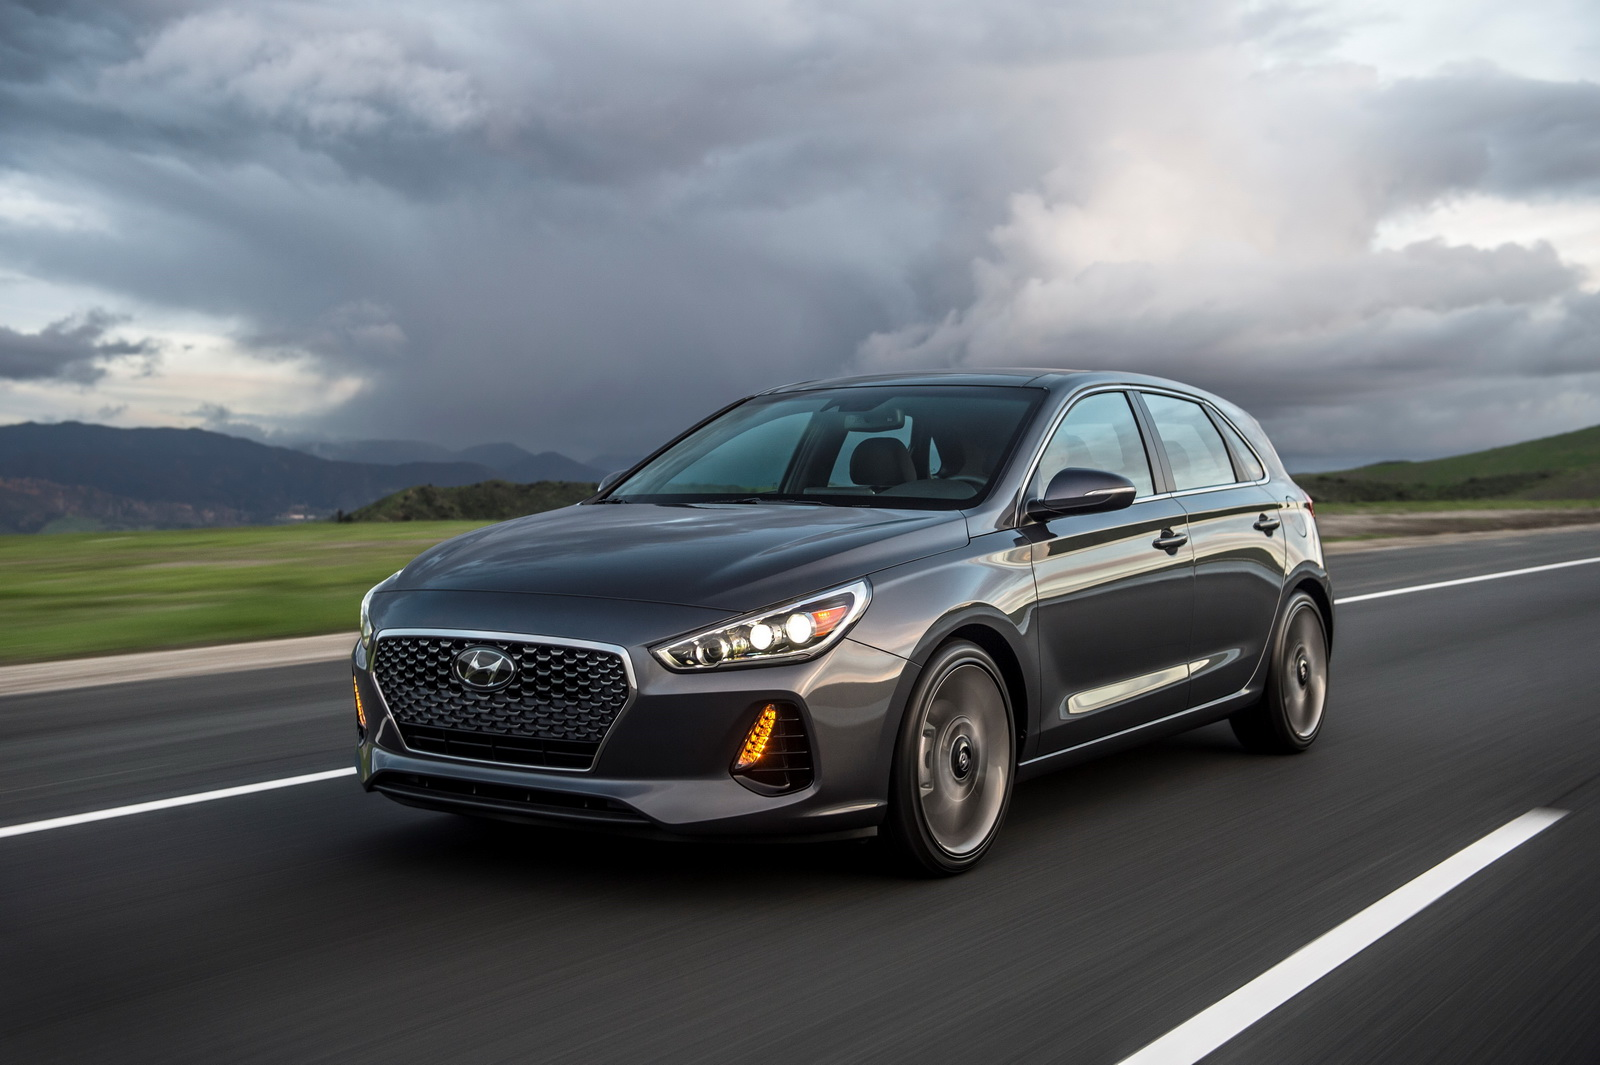 2018 hyundai elantra gt priced from 20 235 gt sport from 24 135. Black Bedroom Furniture Sets. Home Design Ideas